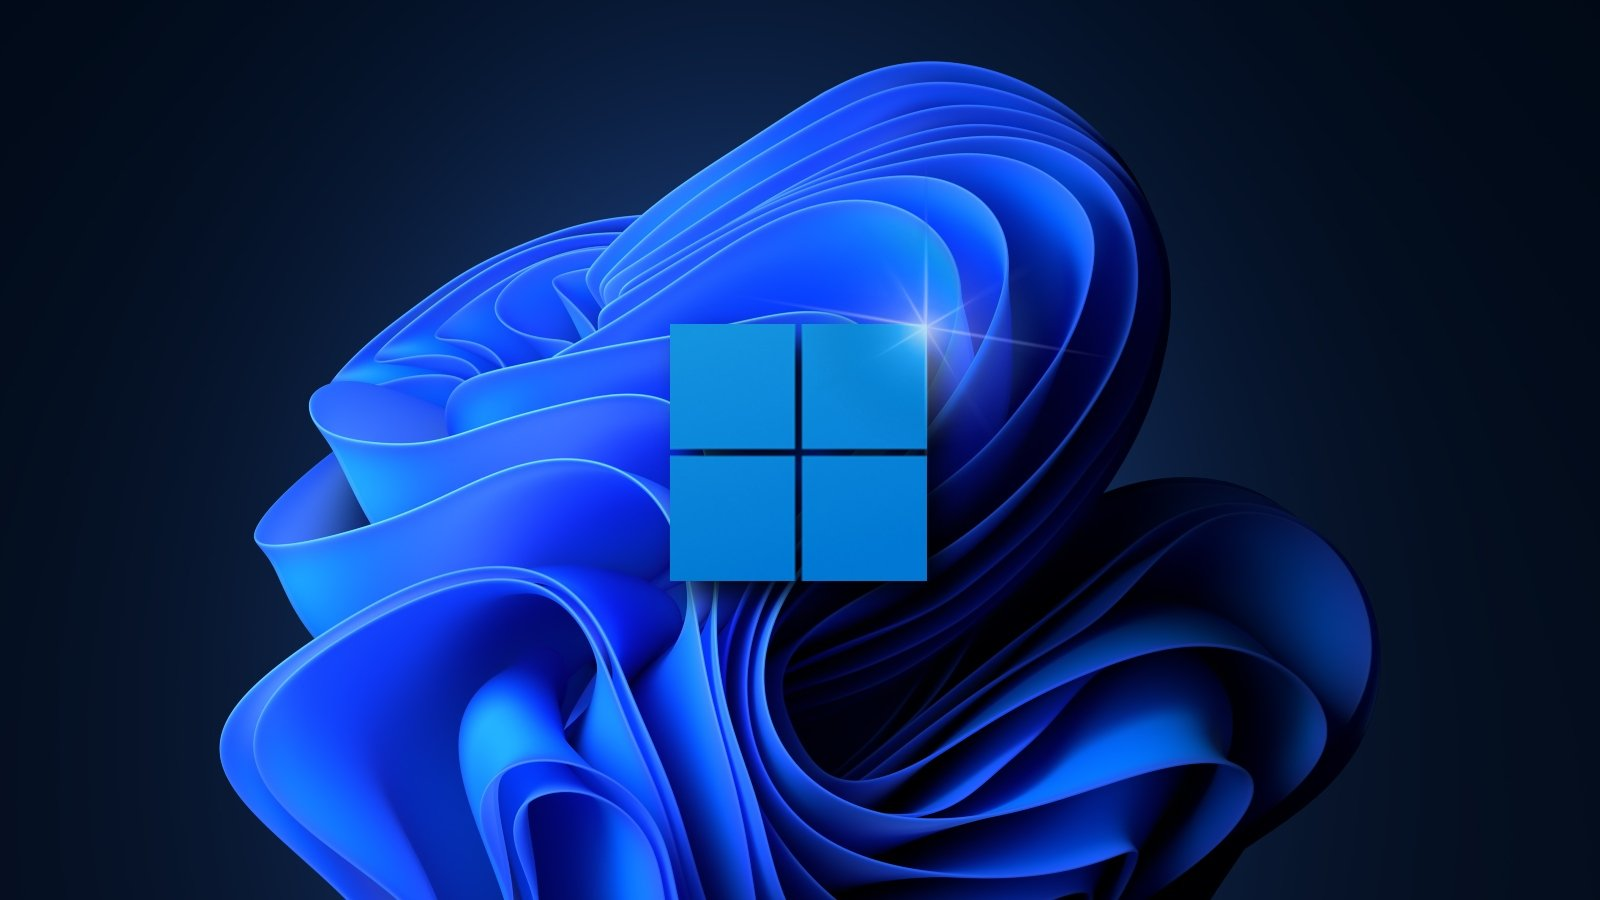 Windows 11 Introduces a Revamped Windows Snapping Feature